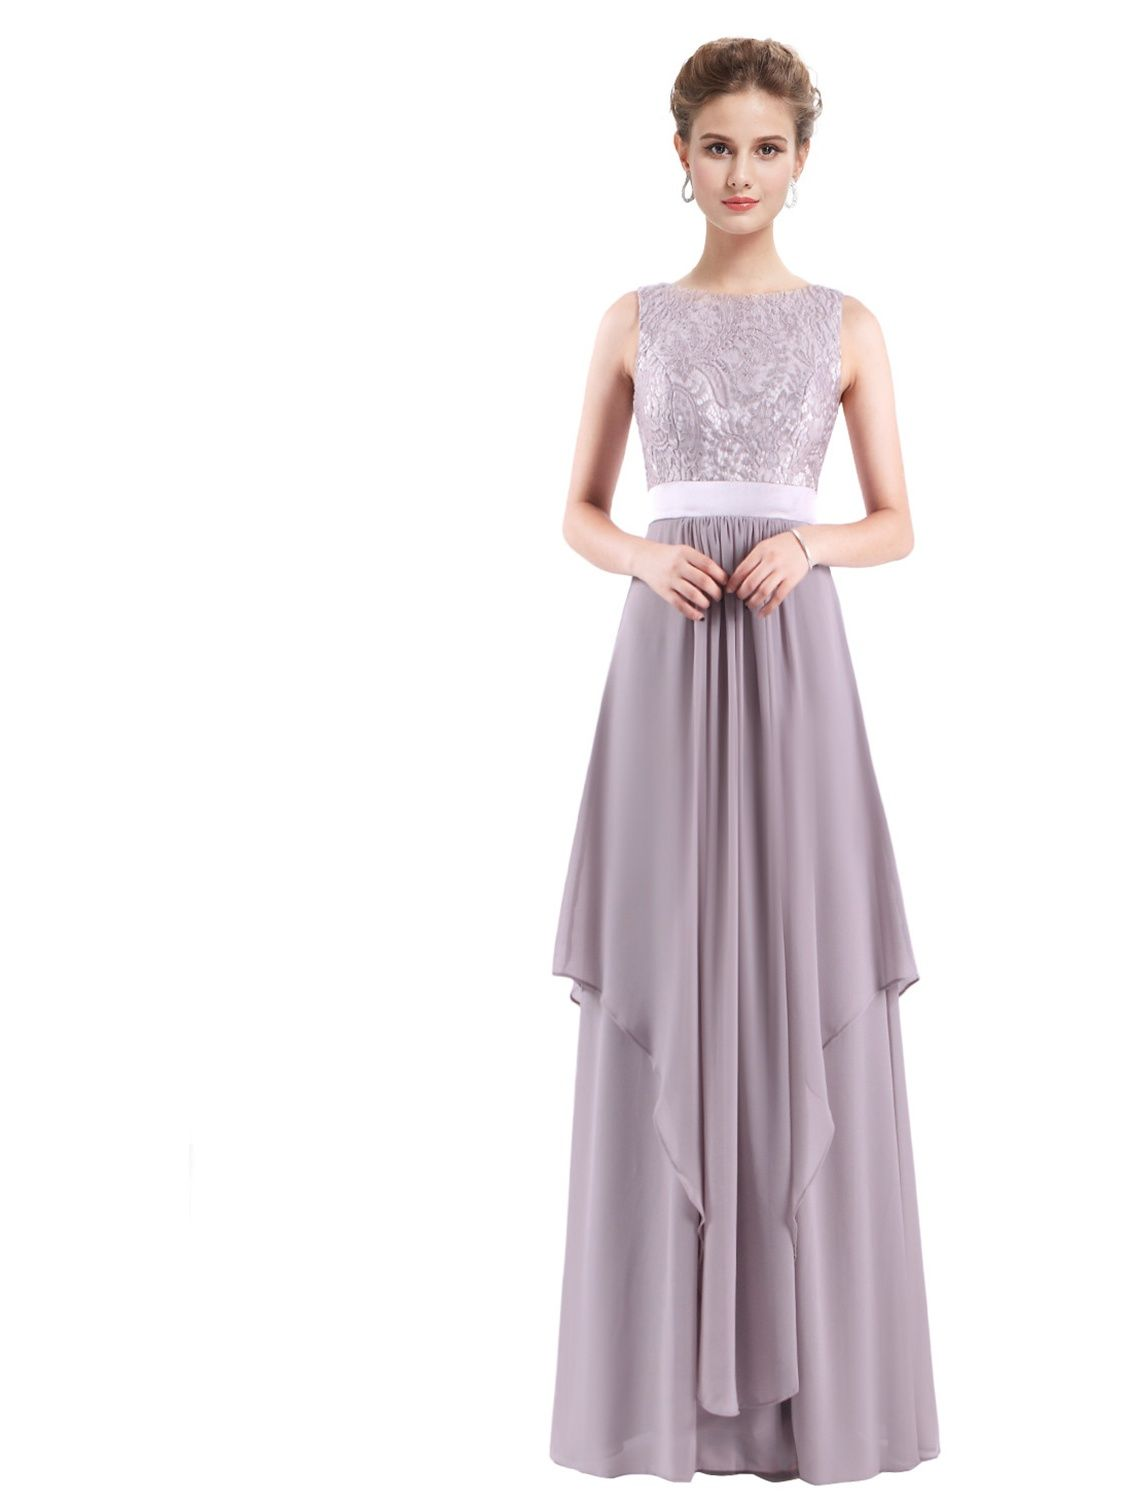 3426eb37bdd Ever-Pretty Women s Elegant Empire Waist Lace Flowy Black Tie Evening Prom  Party Cocktail Ball Gown for Women 08217 Grey US 8 Lace